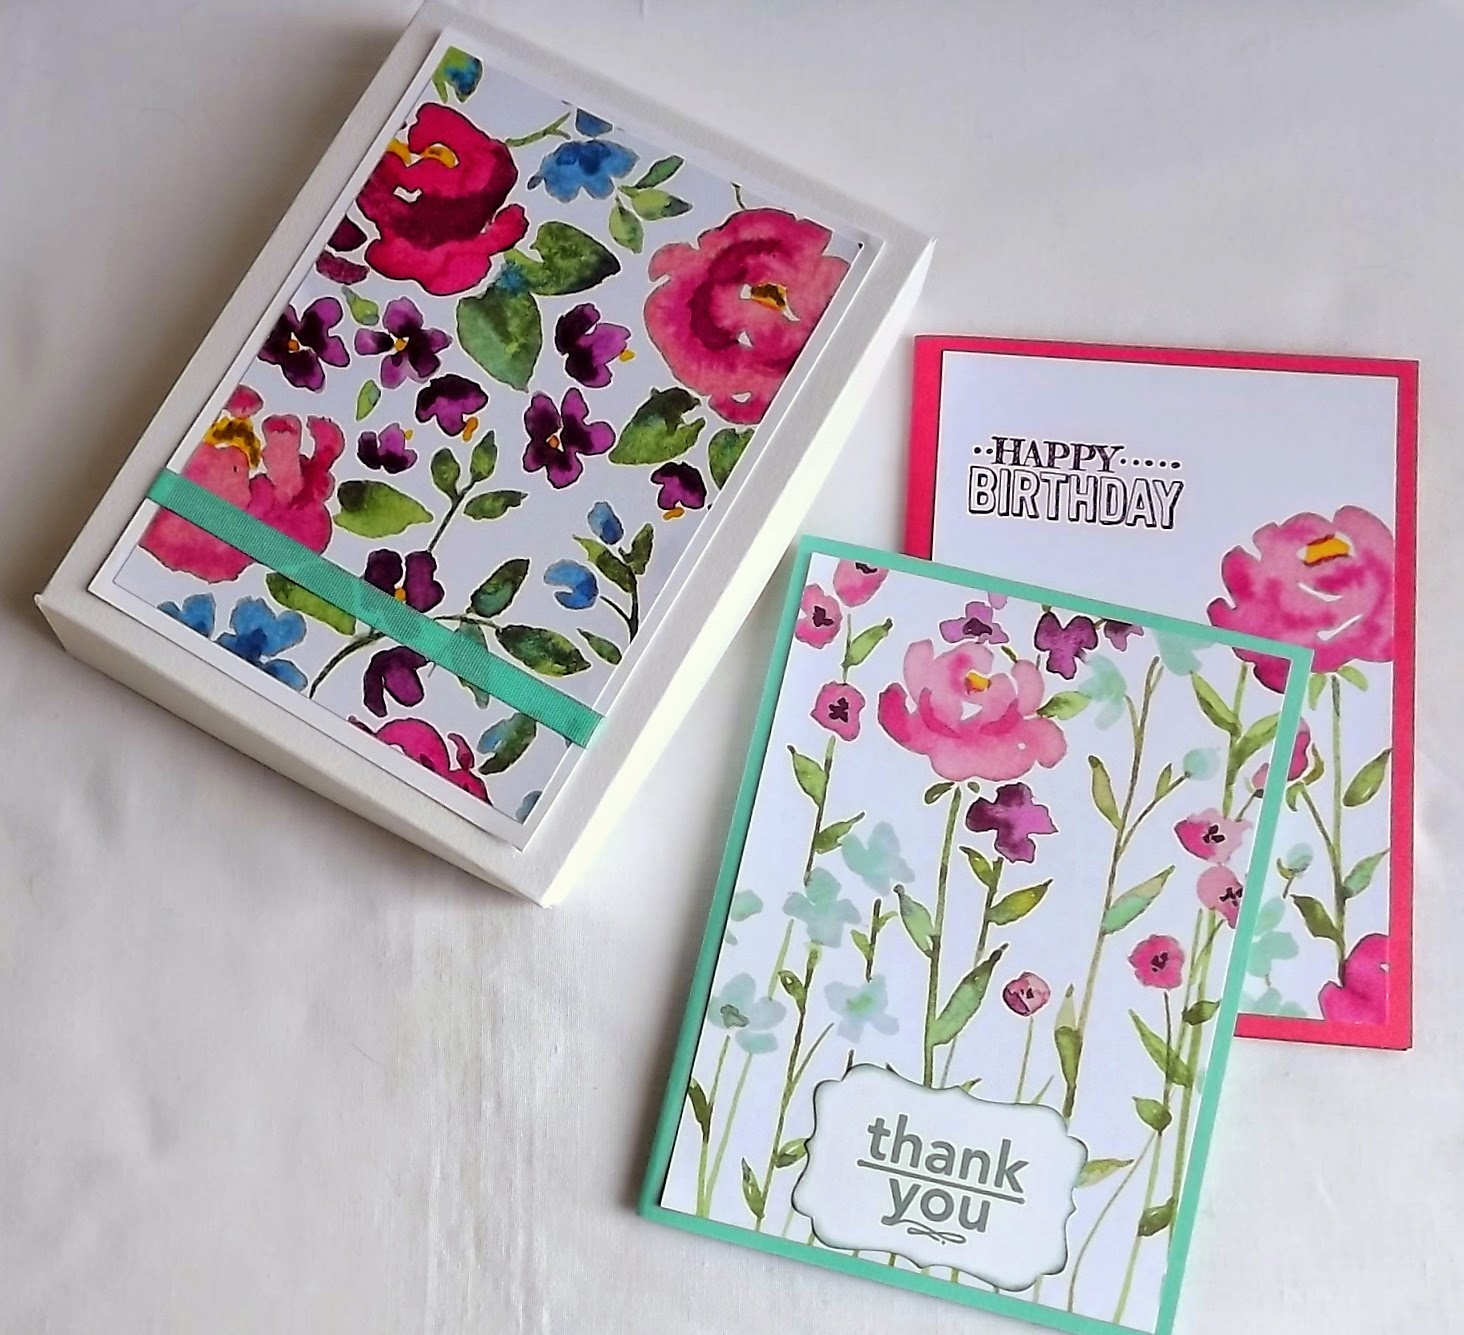 Stampin Up! Painted Blooms card and box